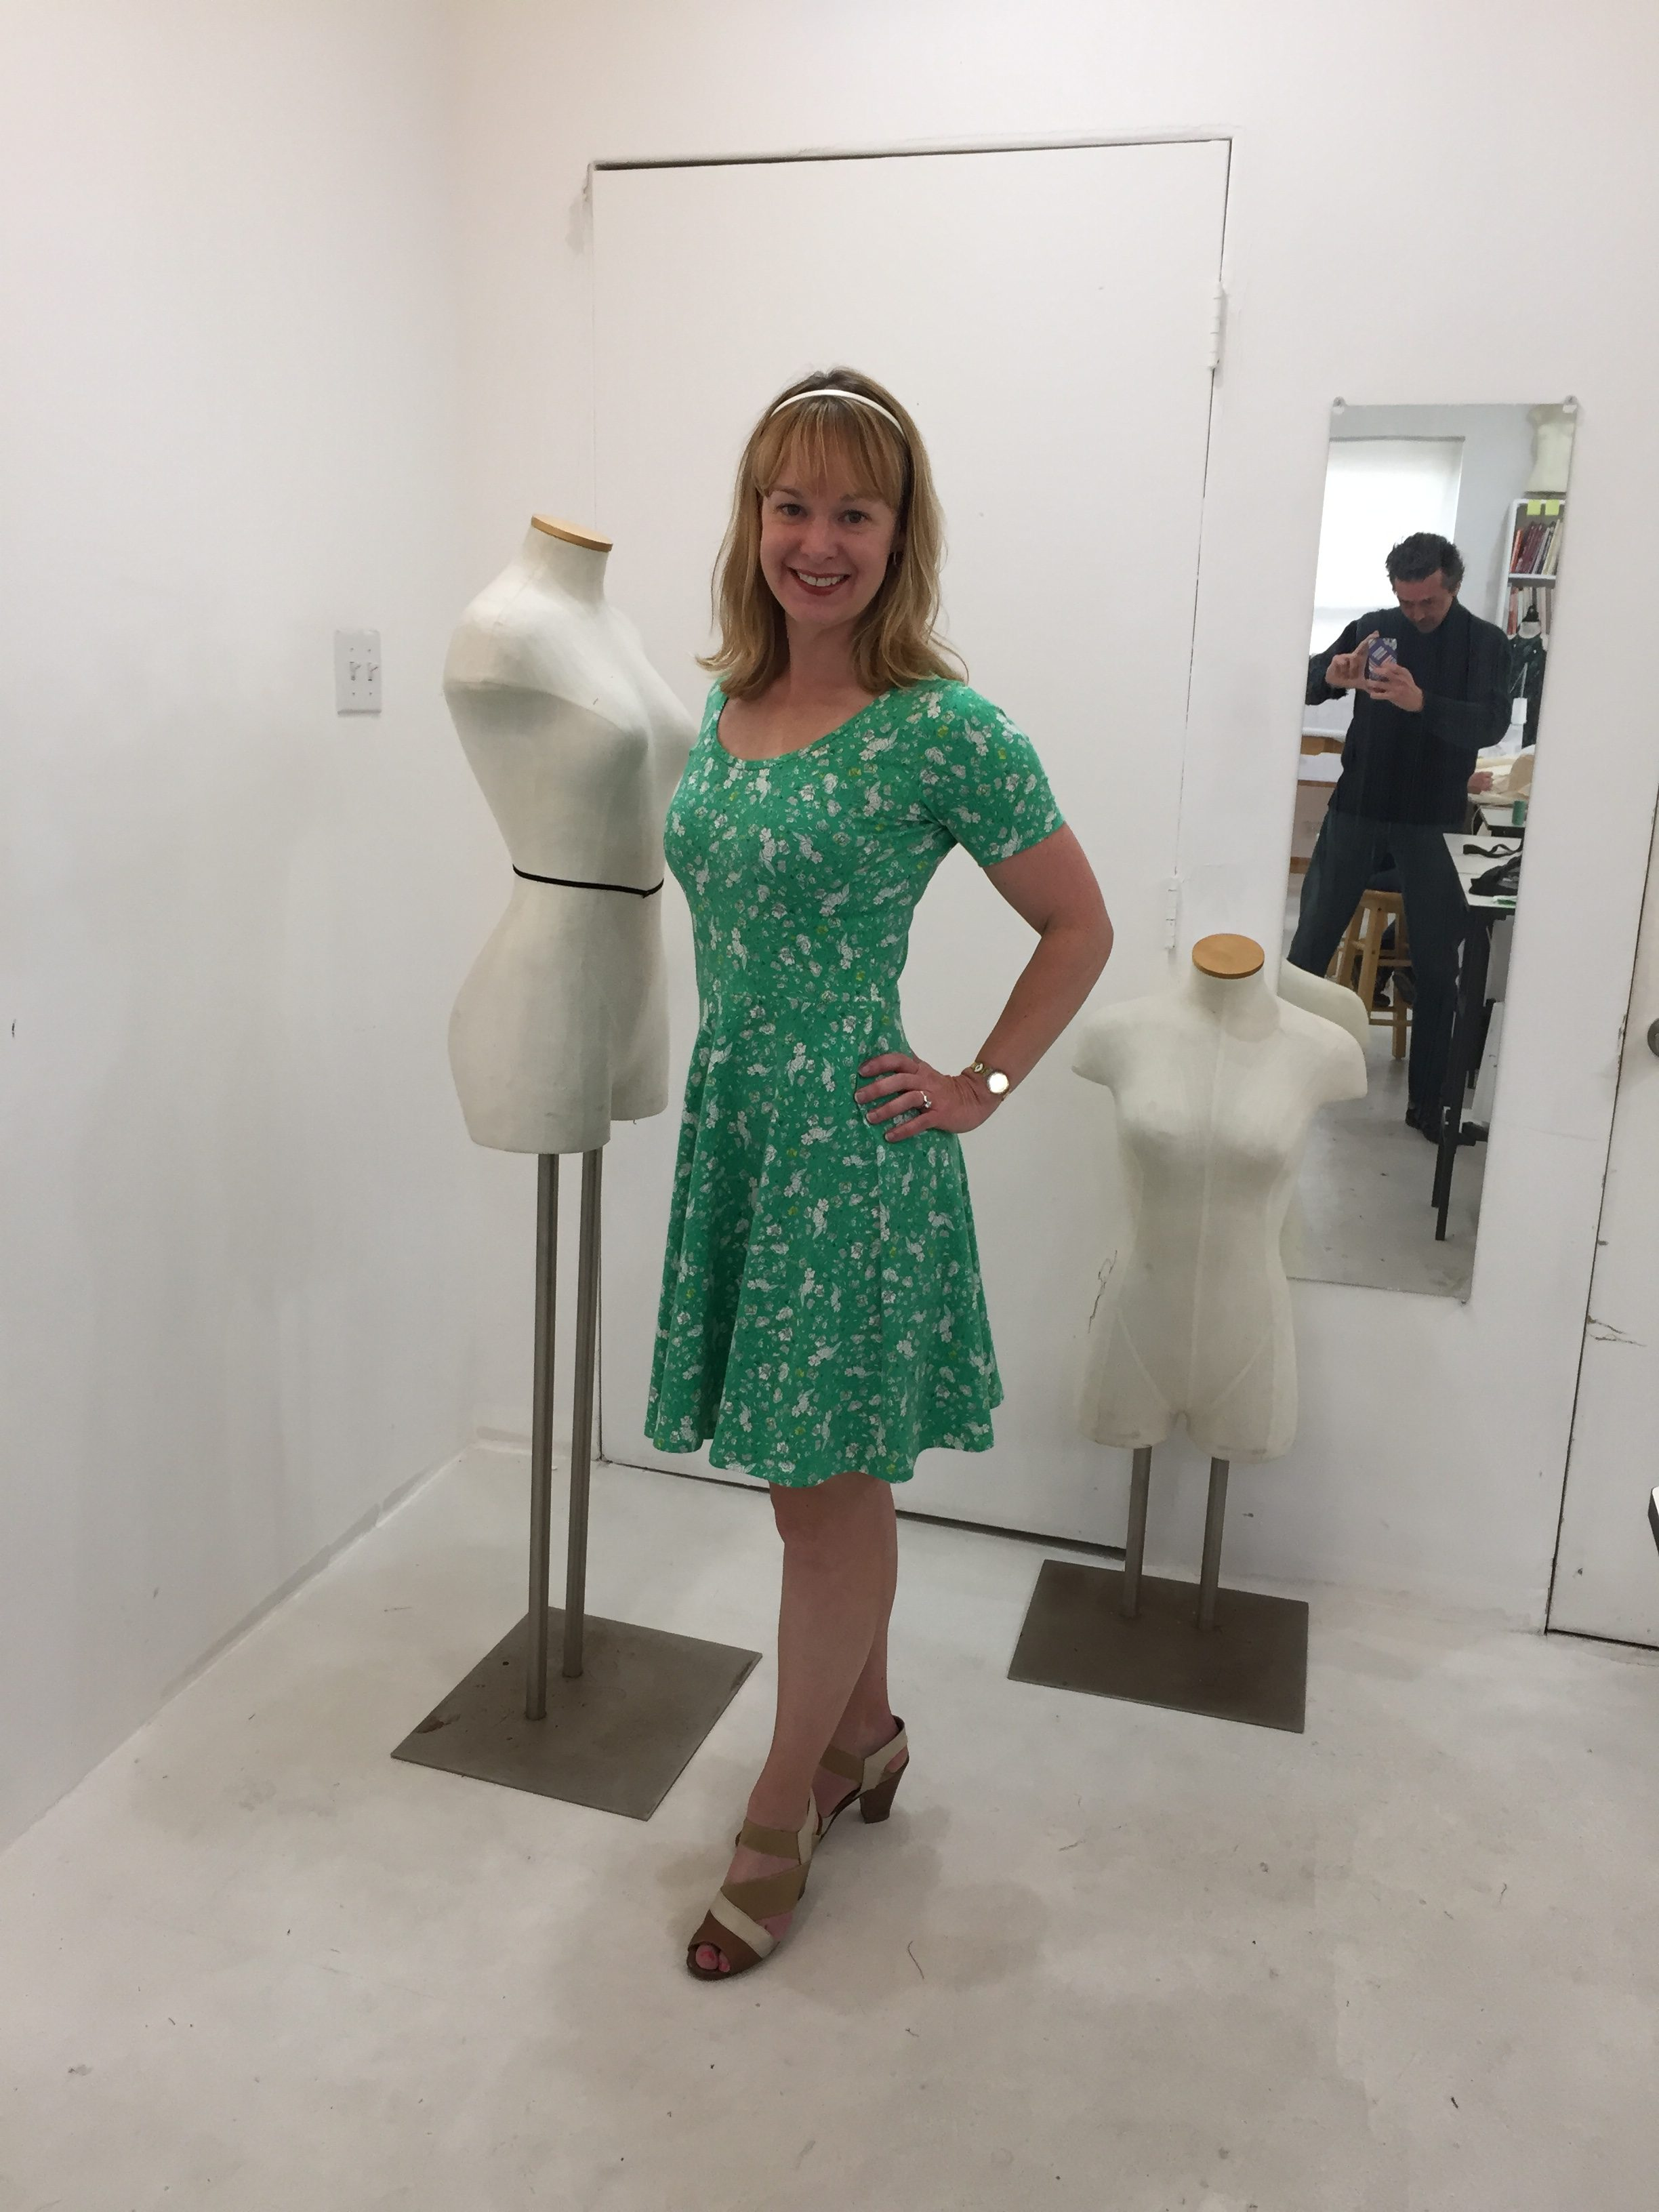 Erin models her latest dress: The Frances Dress by Victory Patterns in the Tchad sewing studio workrooms in Chicago